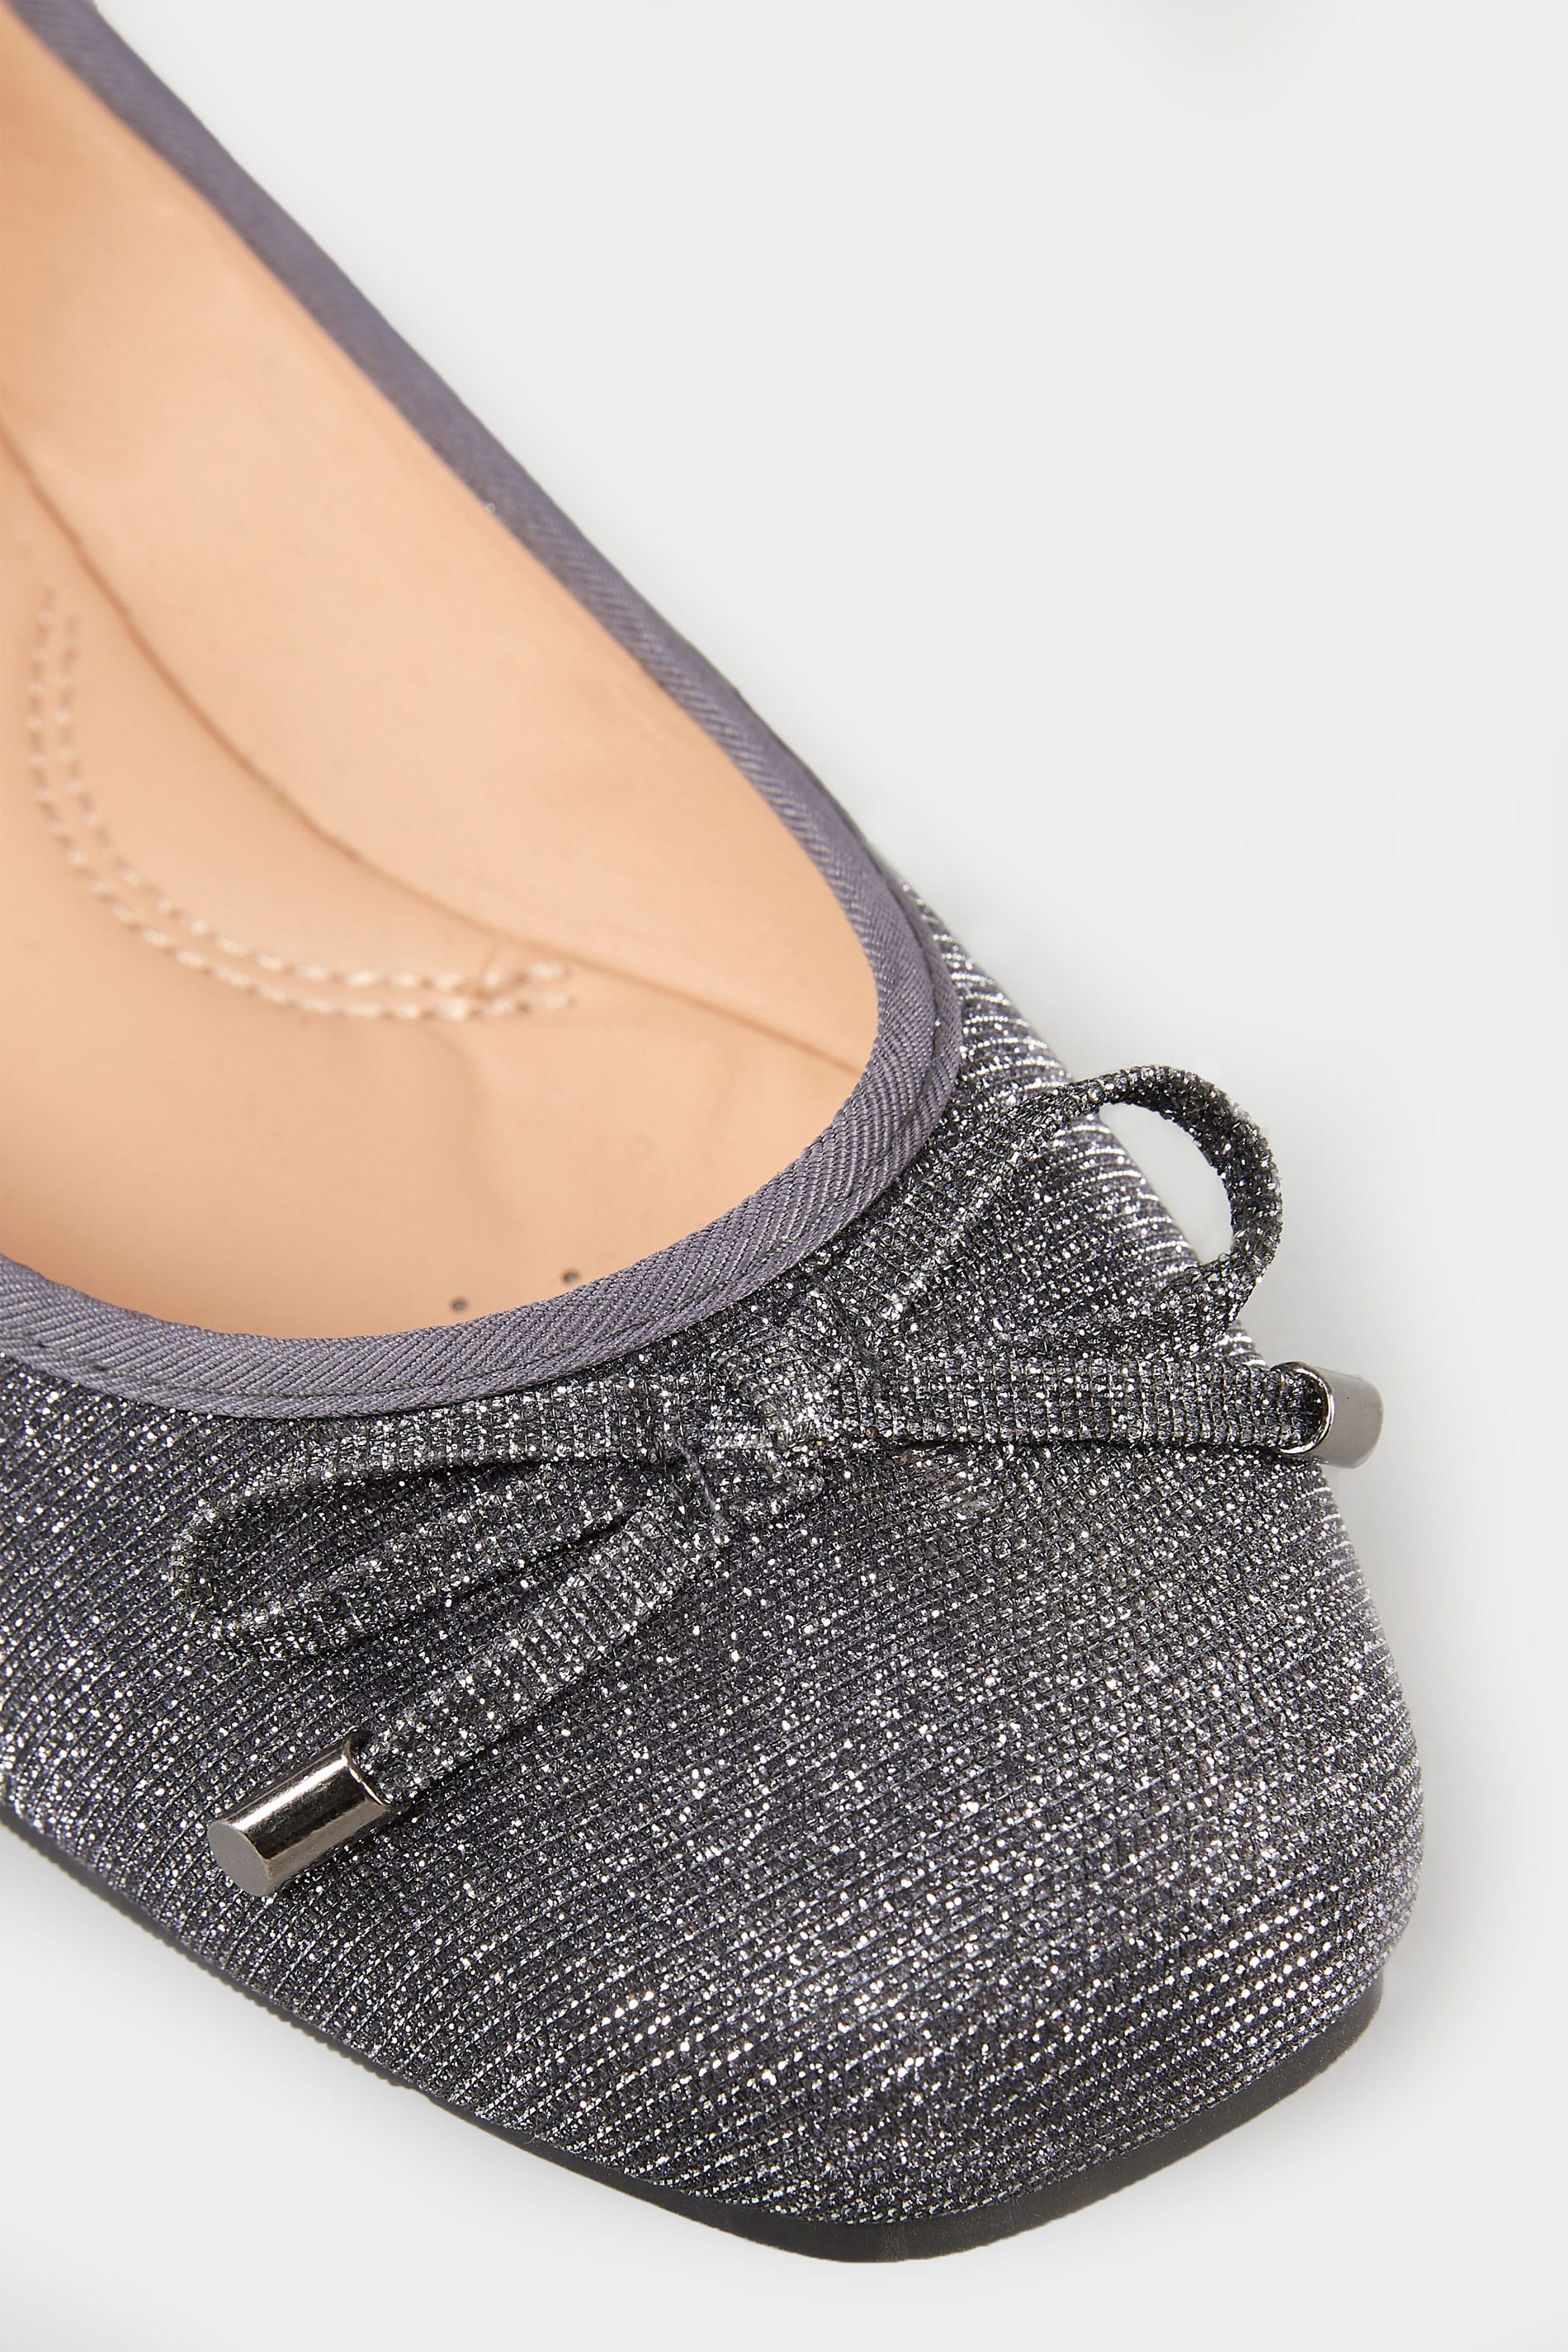 buy popular d79fb 97207 Silver Shimmer Ballerina Pumps In Extra Wide Fit